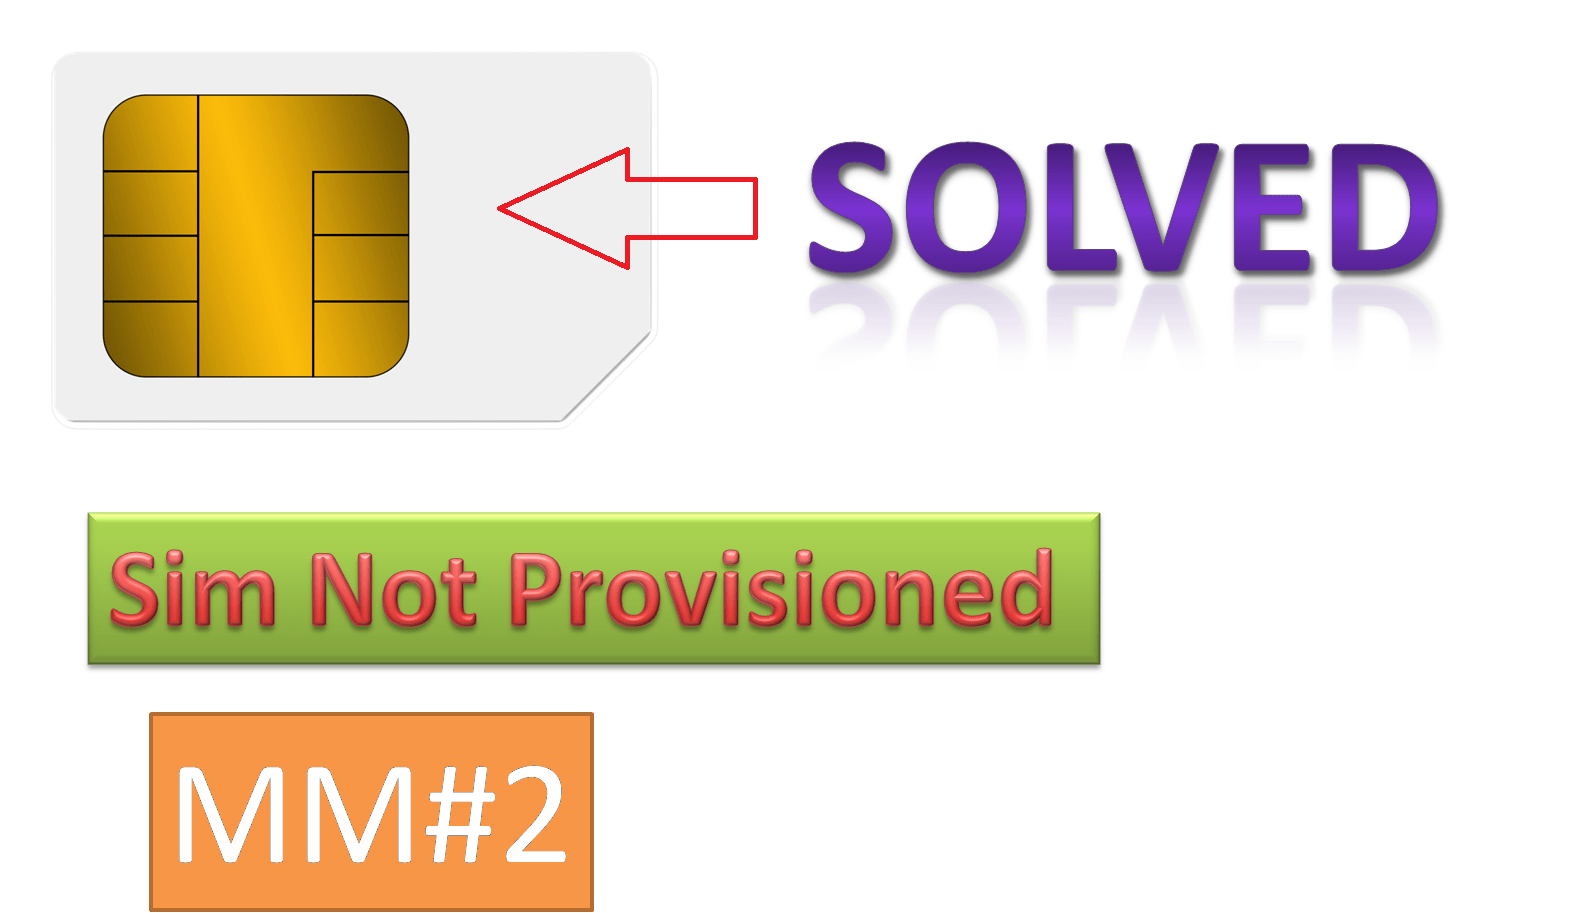 Sim not provisioned error